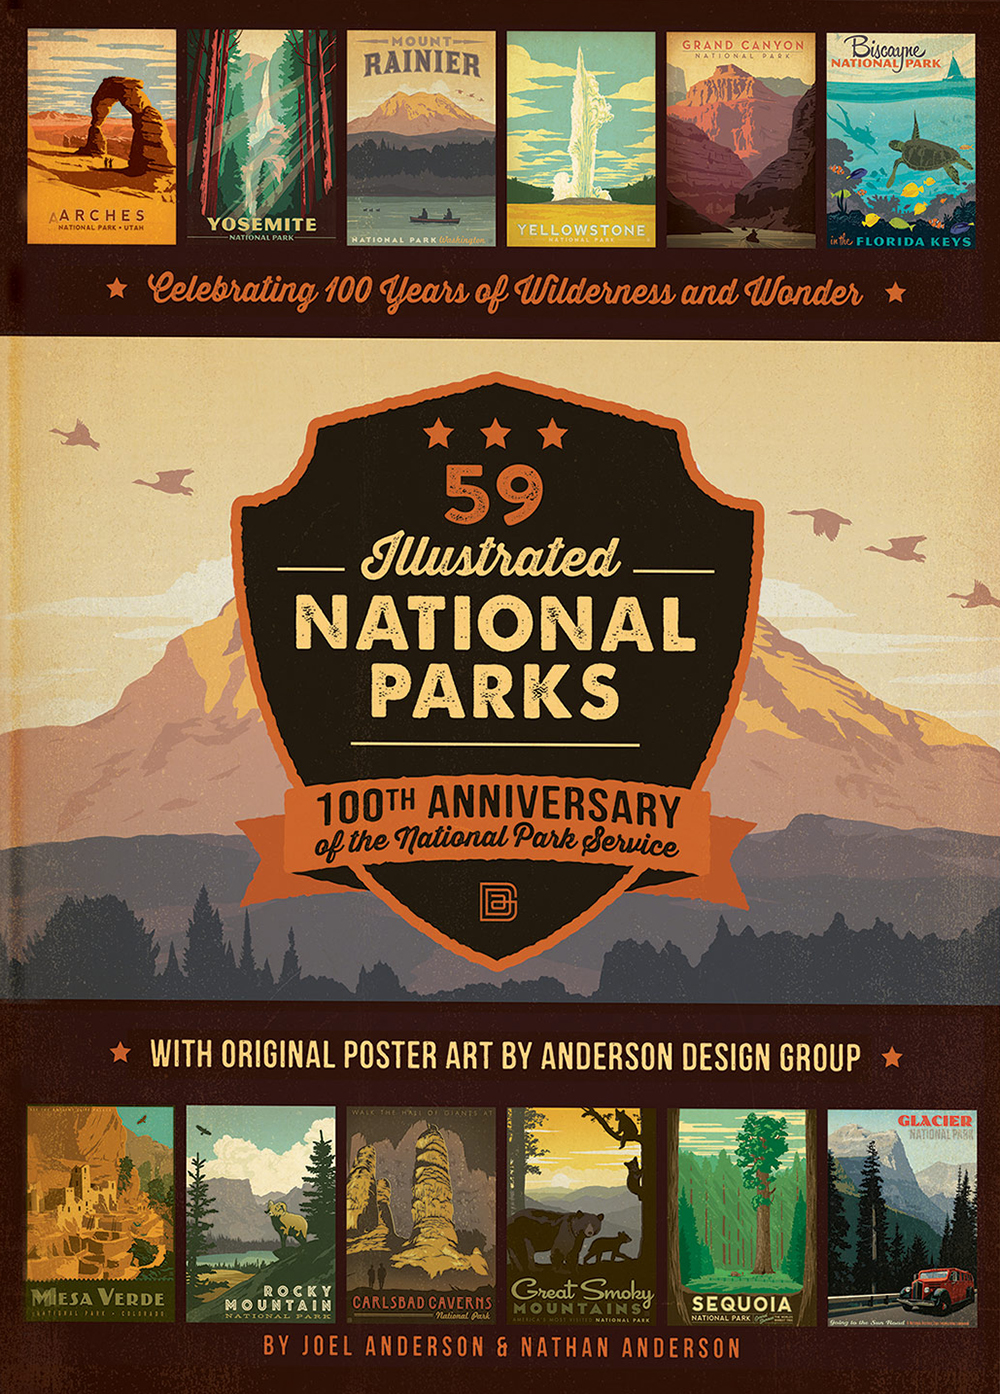 To mark the 100th anniversary of the National Park Service, father and son team Joel Anderson and Nathan Anderson collaborated on a book of travel-poster art created by the Anderson Design Group that celebrates the 59 sites designated as National Parks. Here's a sample of those posters to get you excited about the natural beauty found all over America.